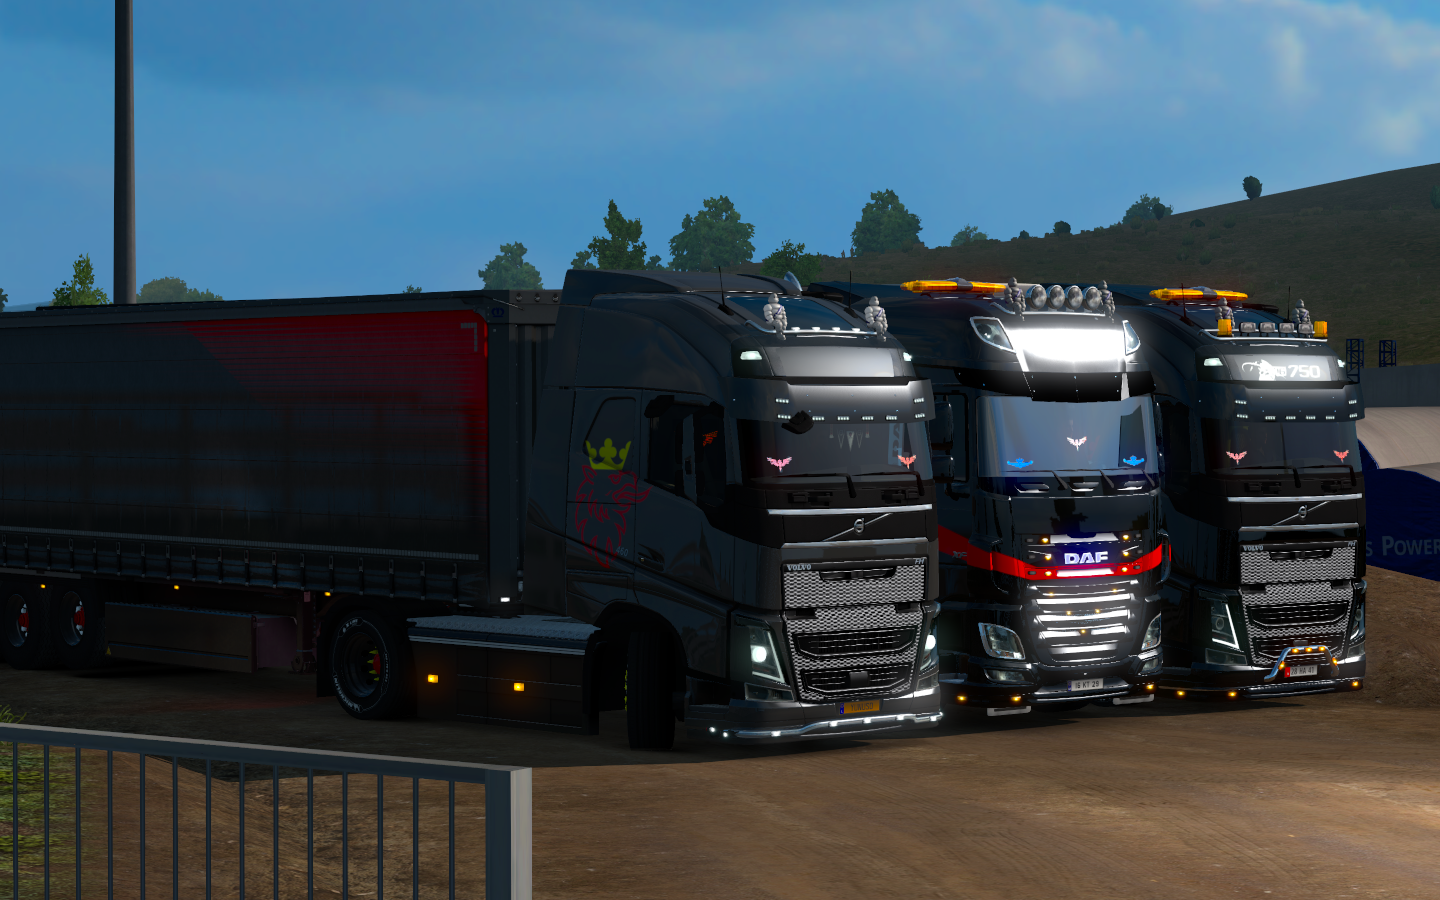 ets2_20190317_152531_00.png